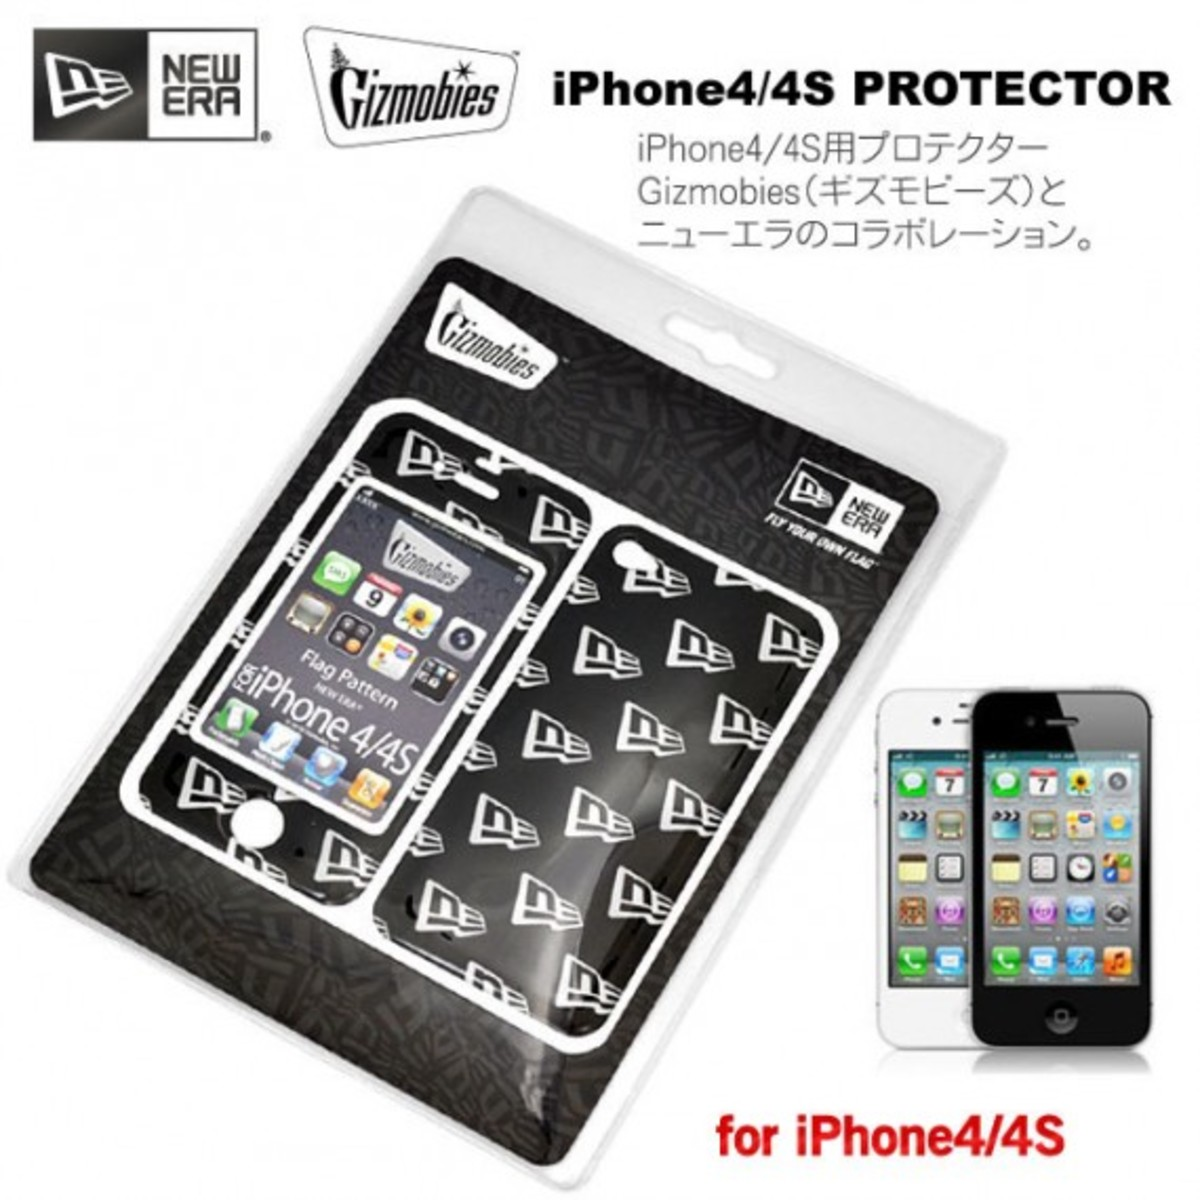 new-era-gizmobies-iphone-protective-cover-03